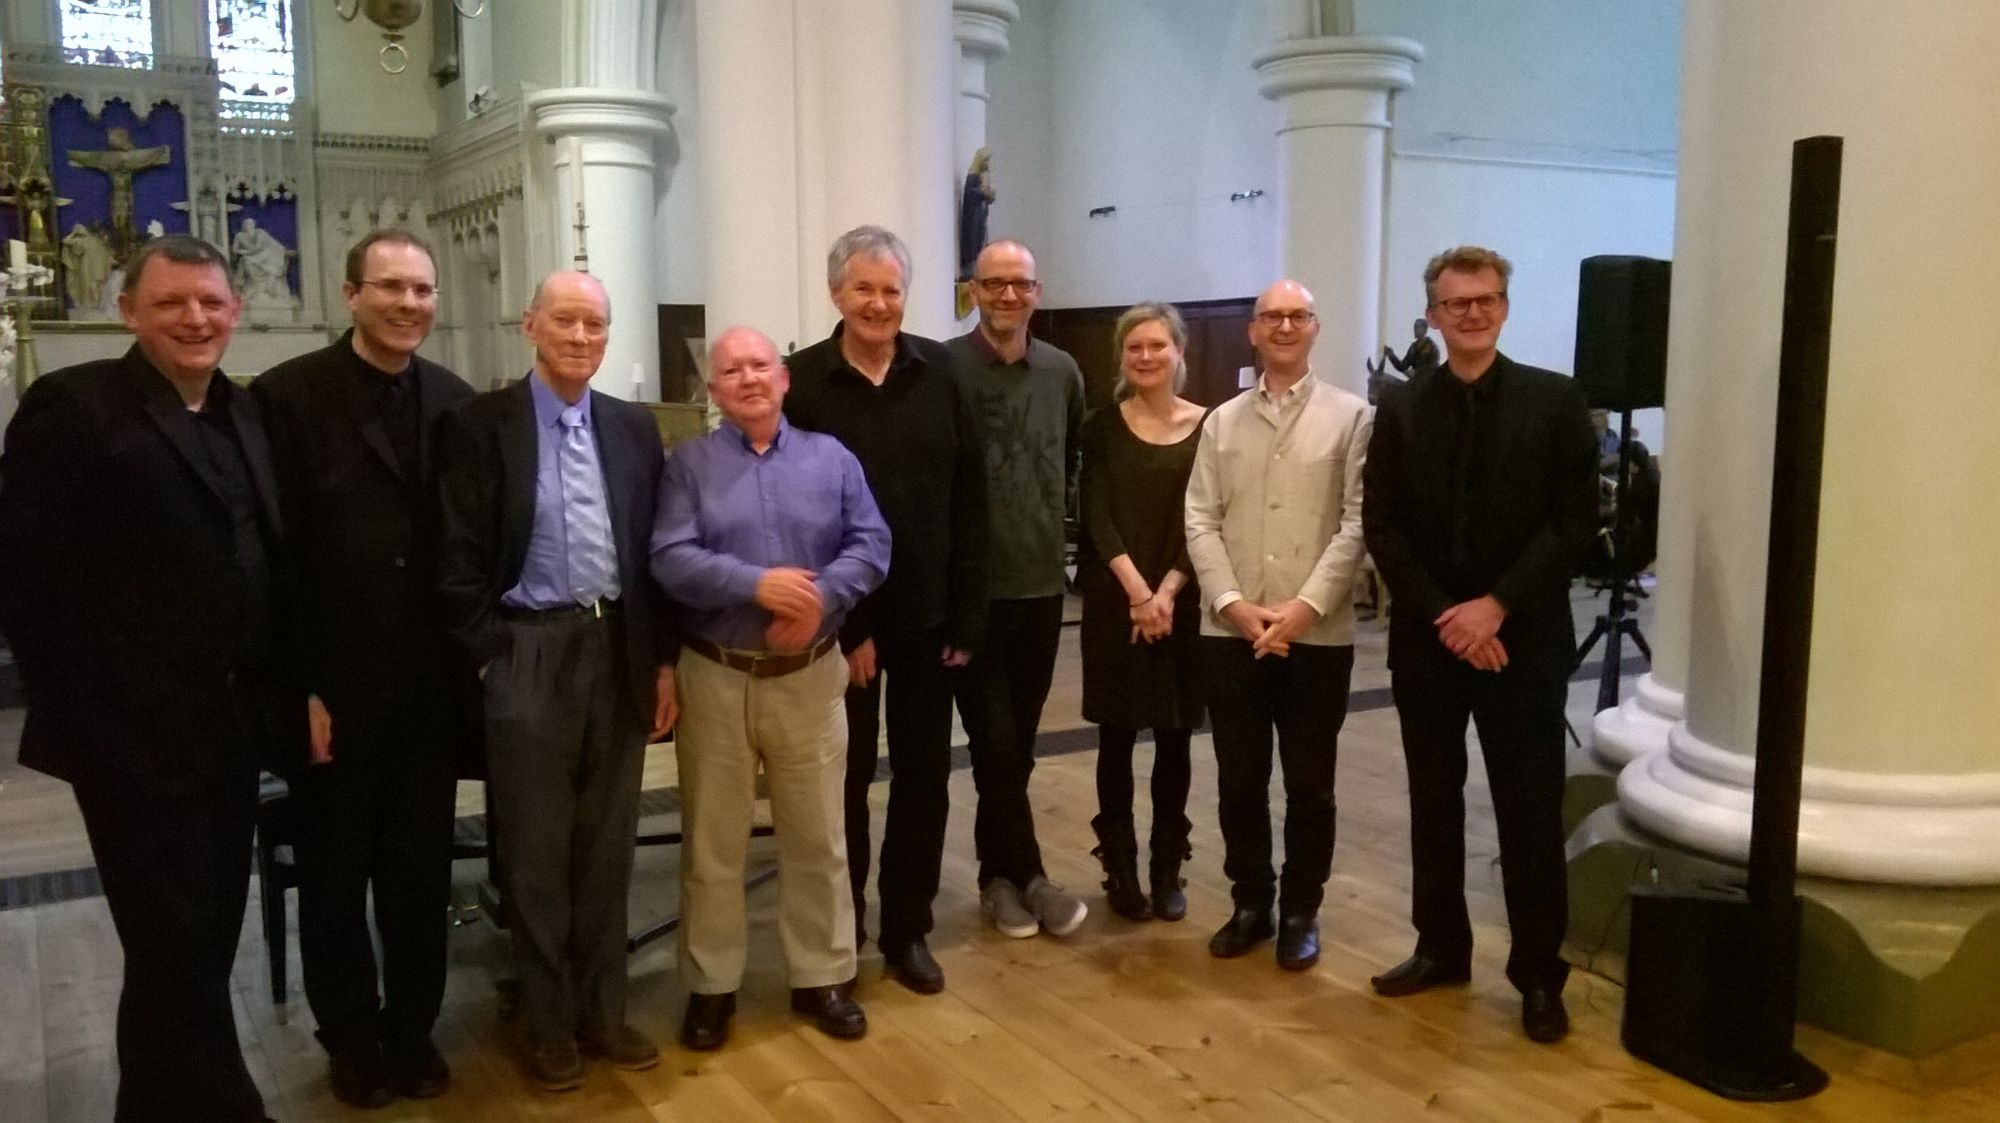 Photograph of Flotilla performers and composers at 04.06.16 Festival